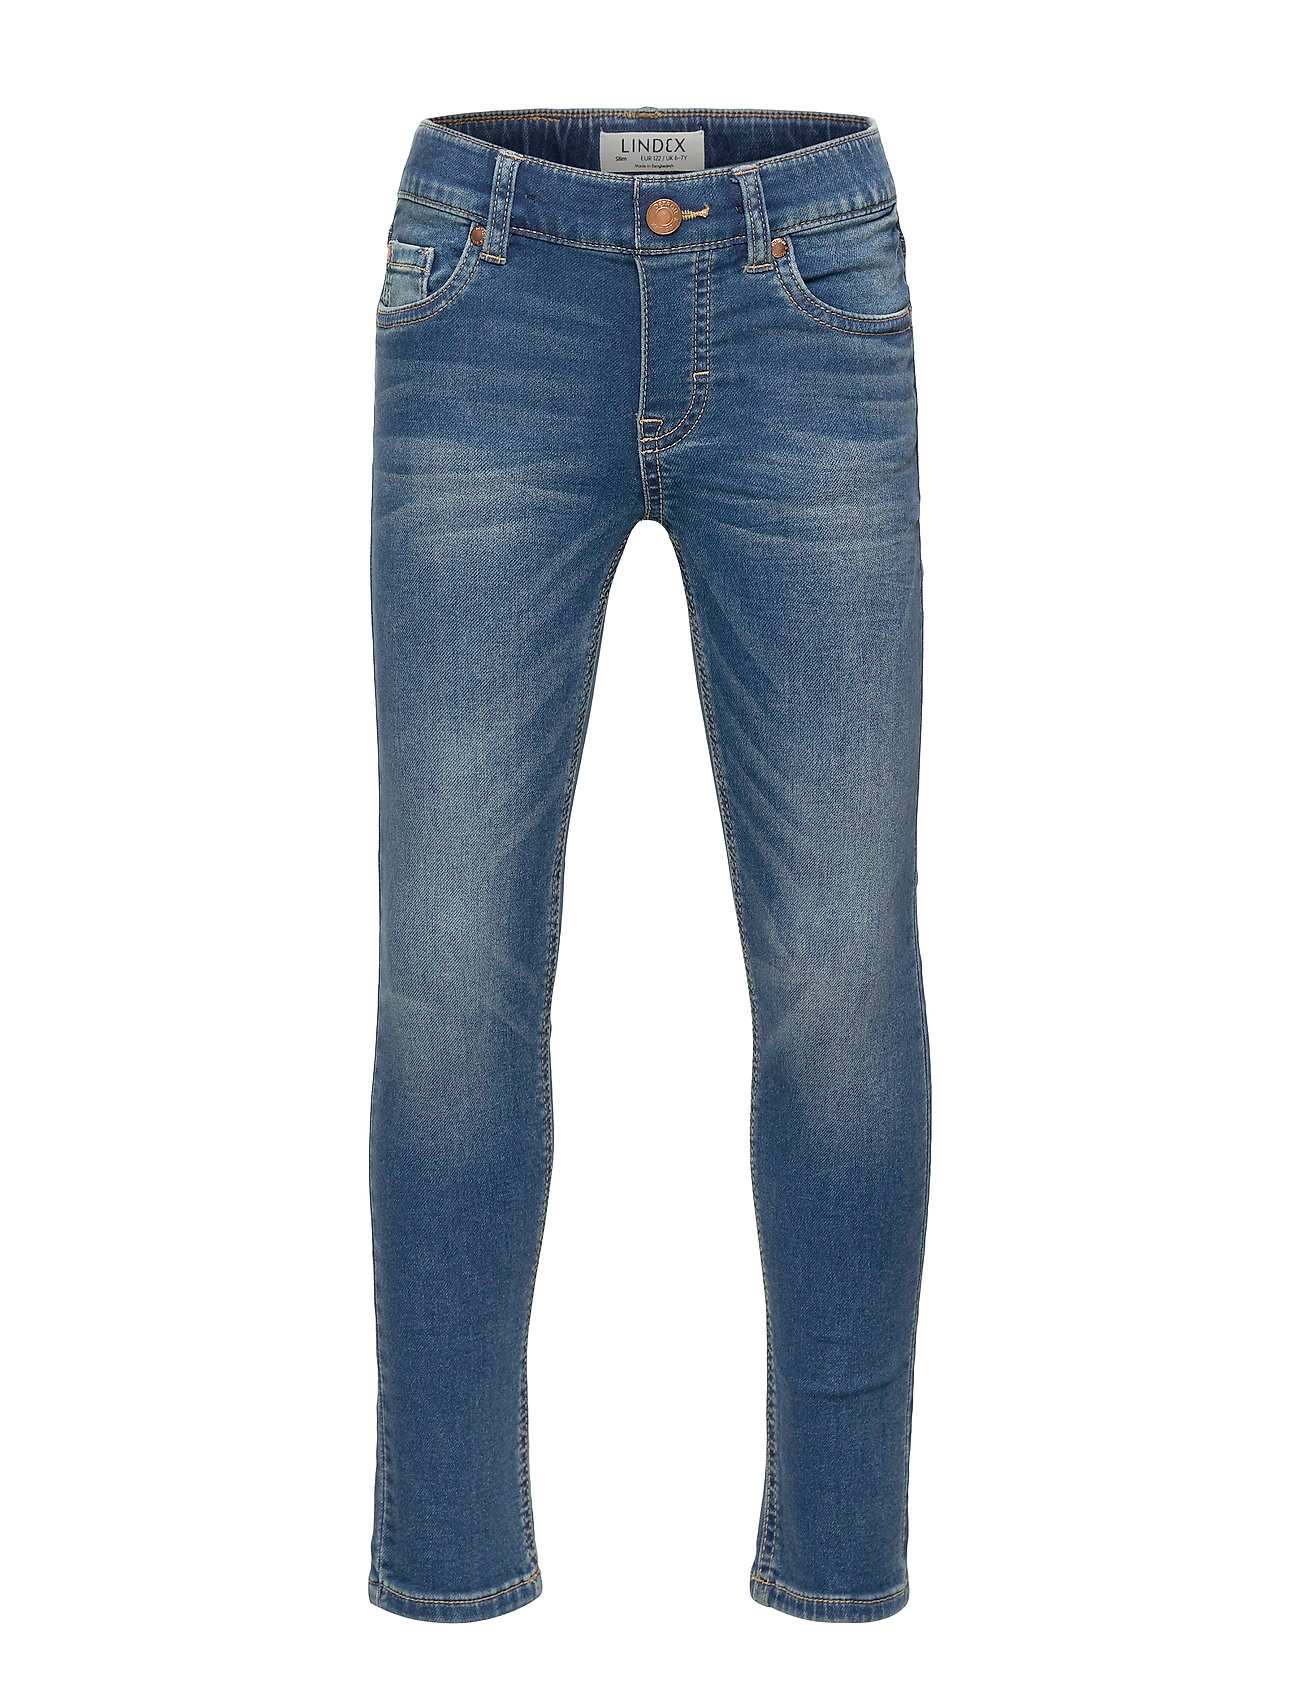 Lindex Trousers denim jersey slim Jim - DENIM